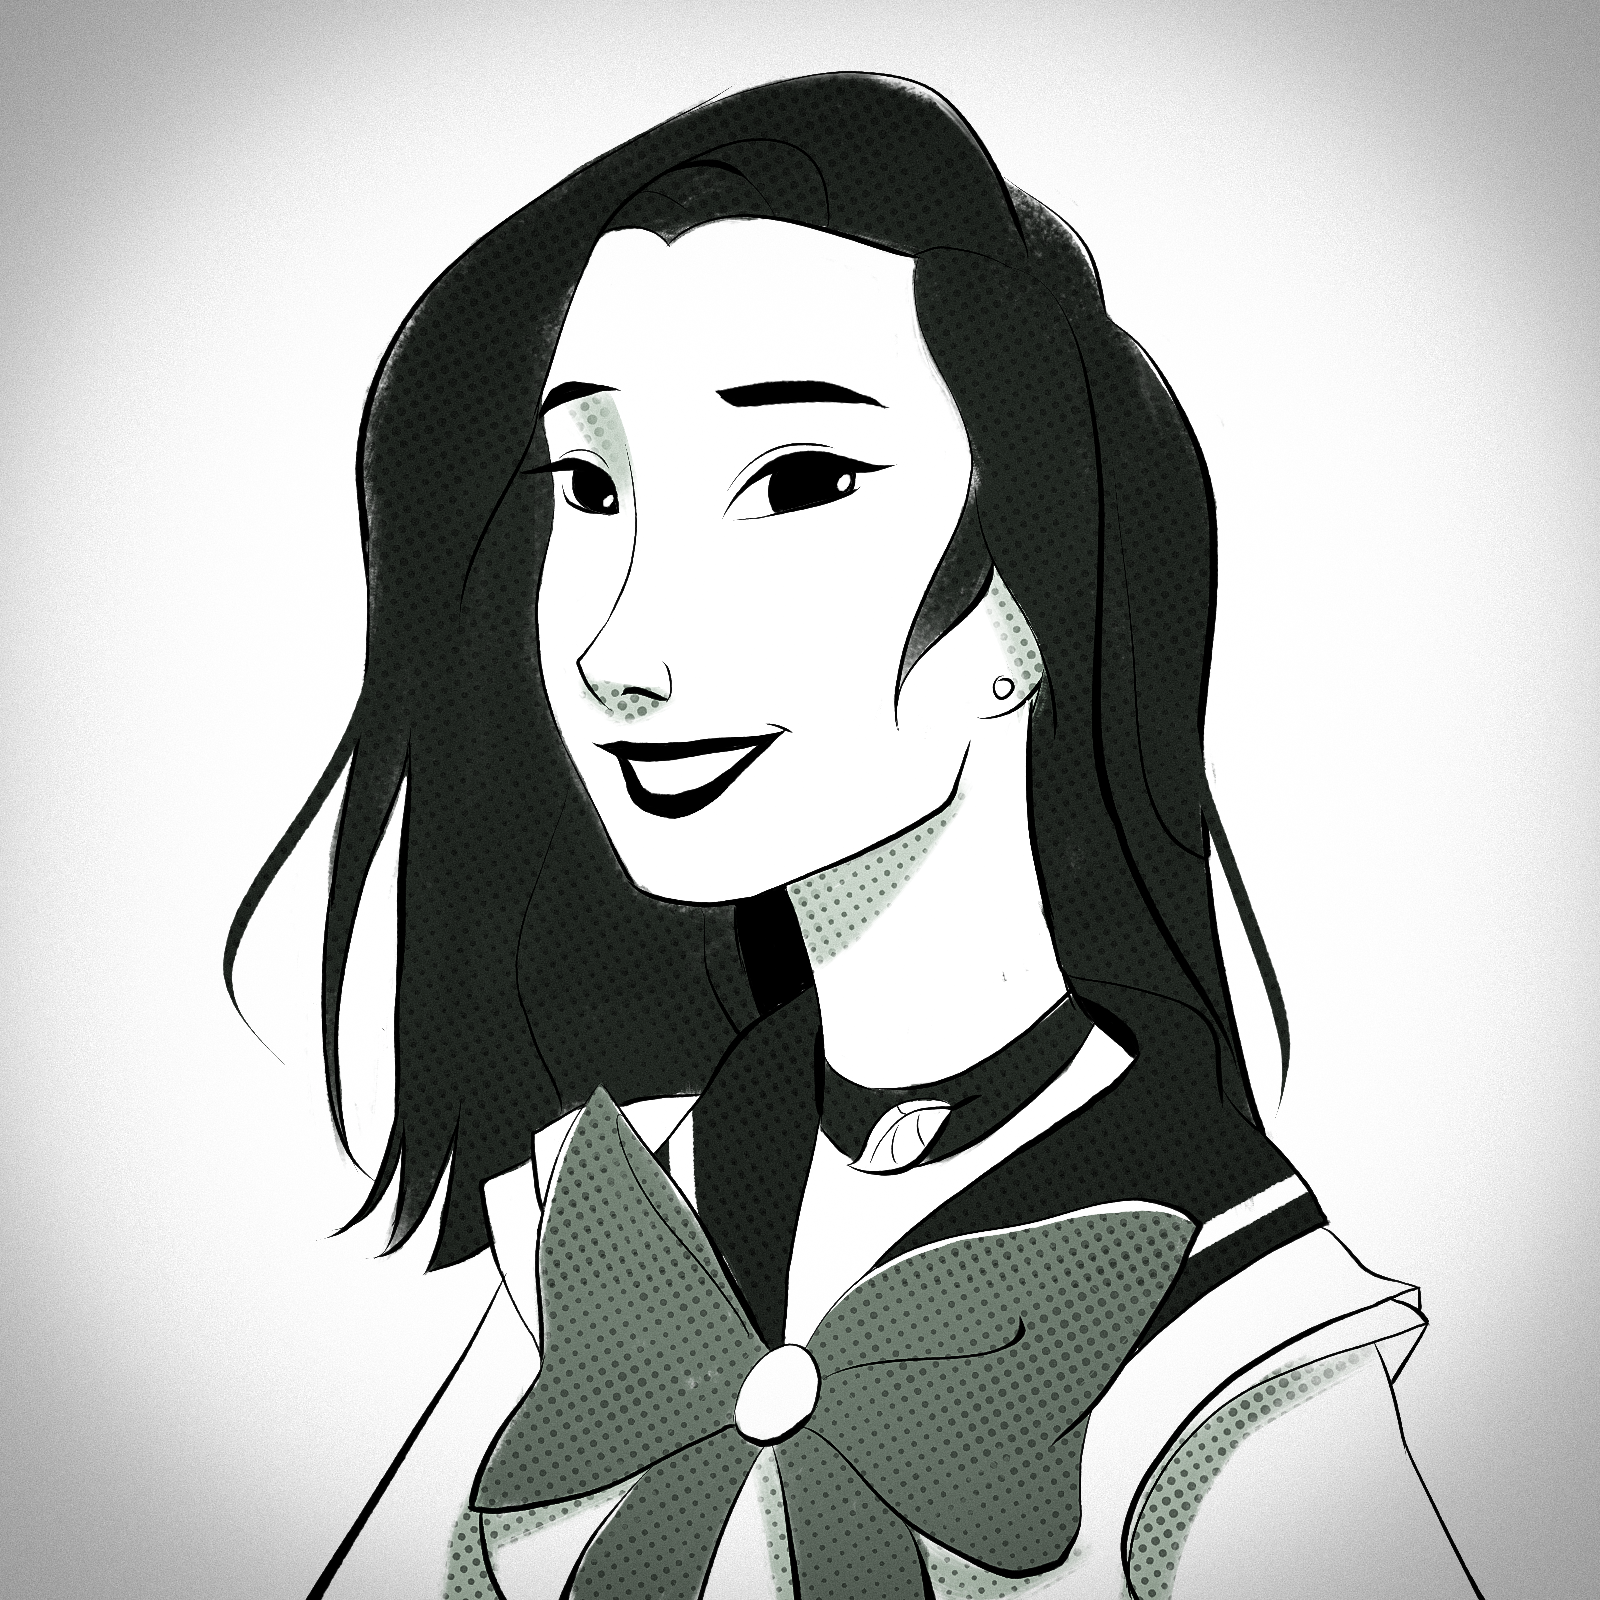 An illustration of Yuzhi Zheng in a sailor uniform reminiscent of Sailor Moon.